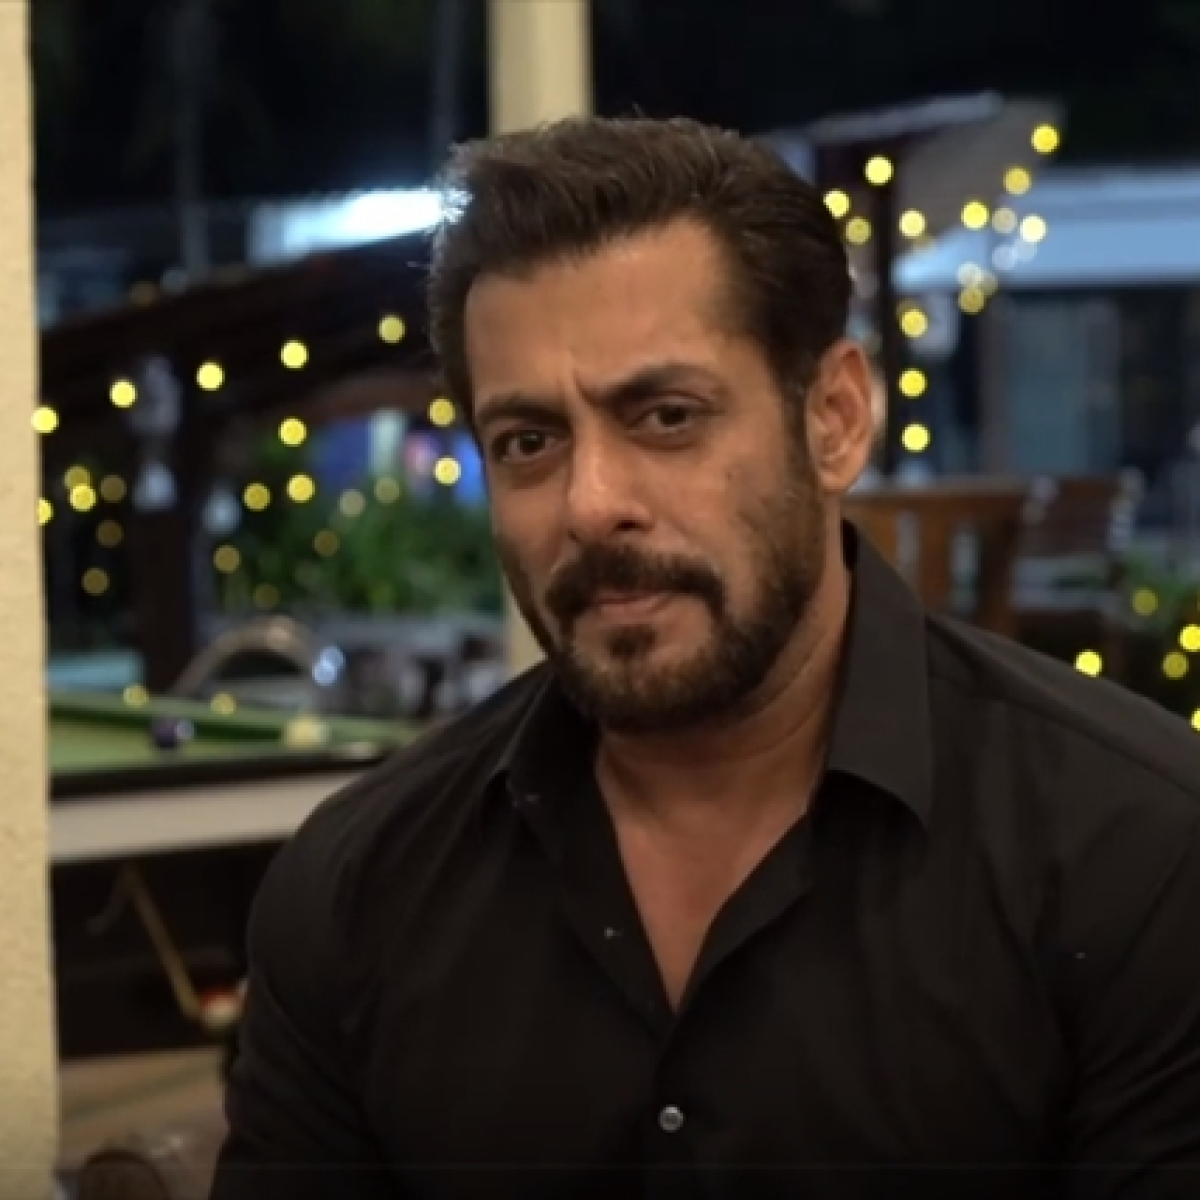 Salman Khan lashes out at 'gawars' violating COVID-19 lockdown, asks, 'Where are you running? Towards life or death?'